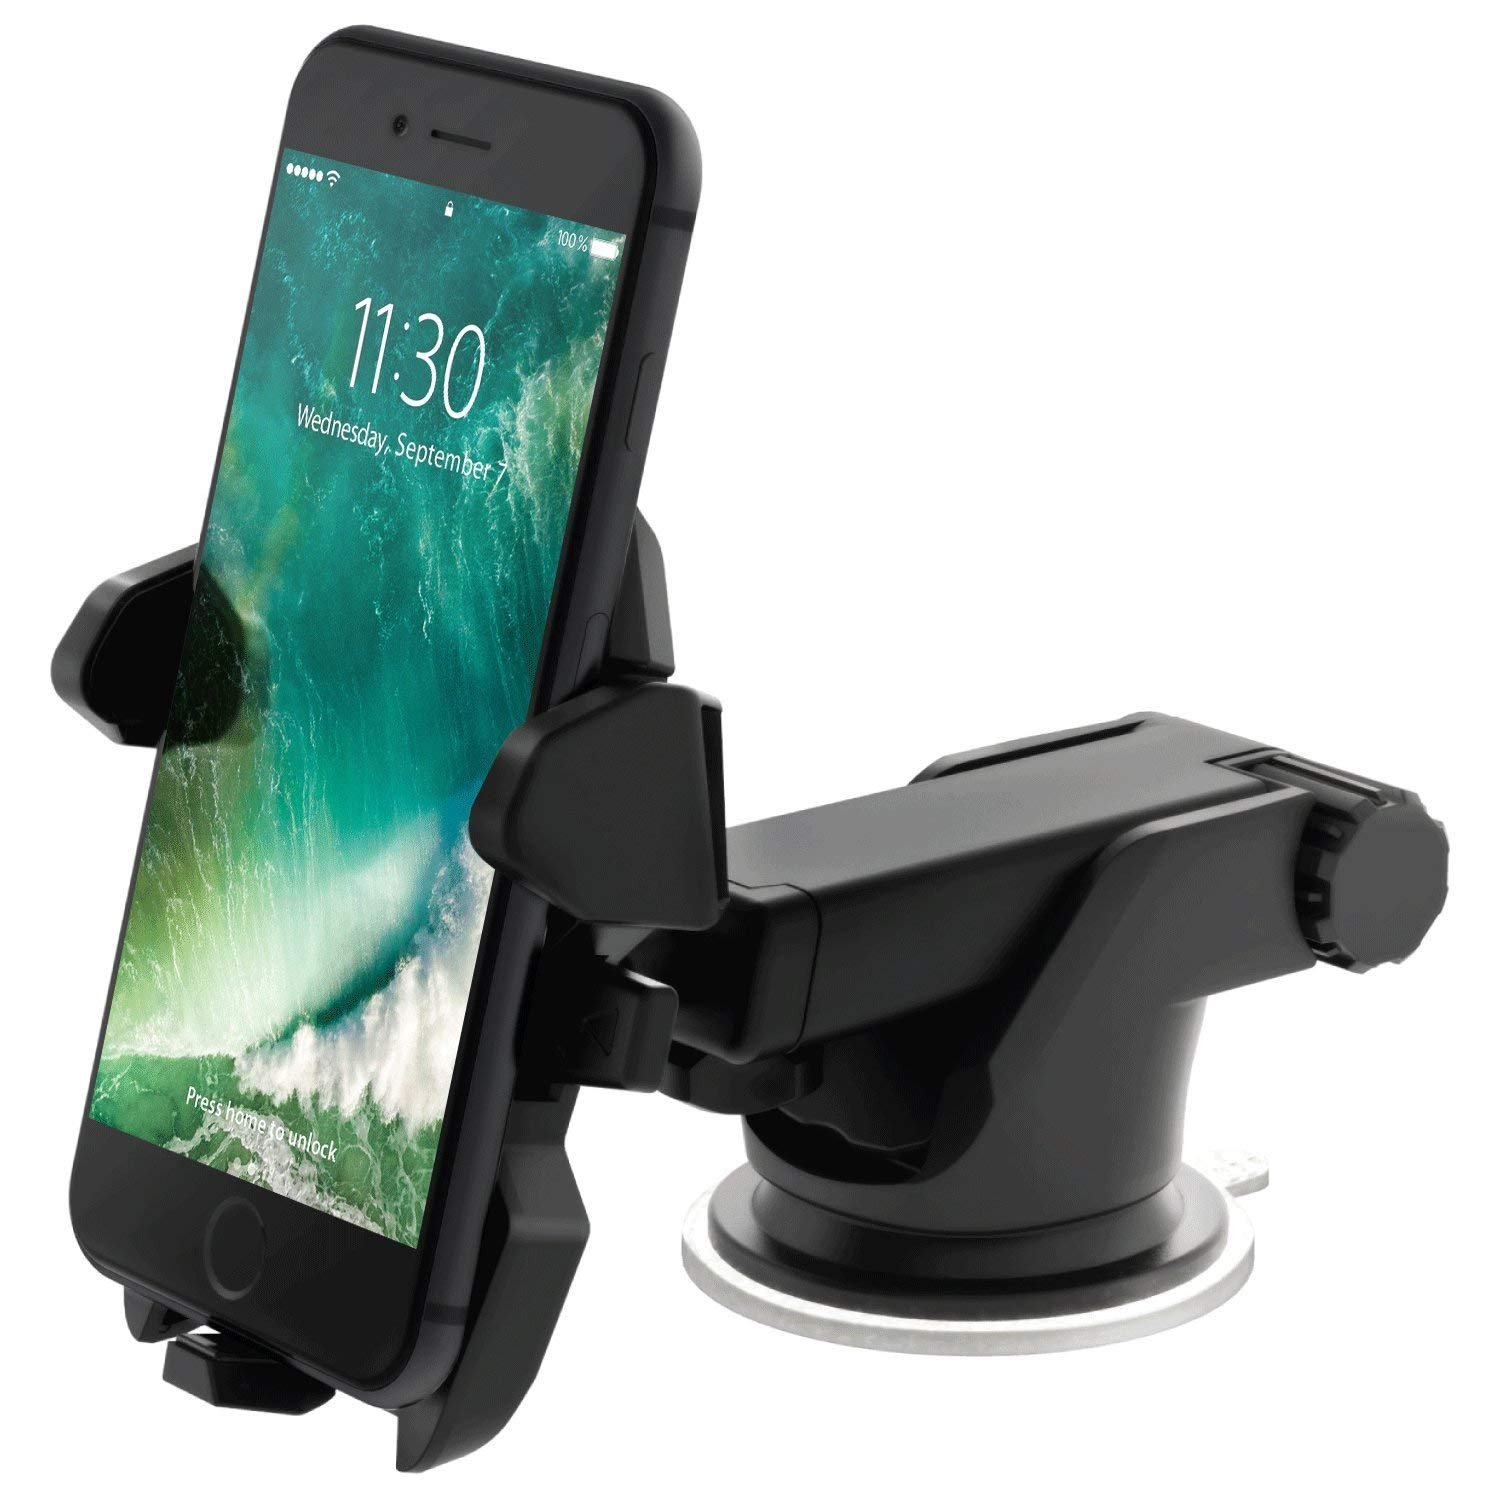 Note 9 /& Other Smartphone King of wonder Easy One Touch 2 Dashboard /& Windshield Car Phone Mount Holder for iPhone Xs Max R 8 Plus 7 Samsung Galaxy S10 E S9 S8 Plus Edge